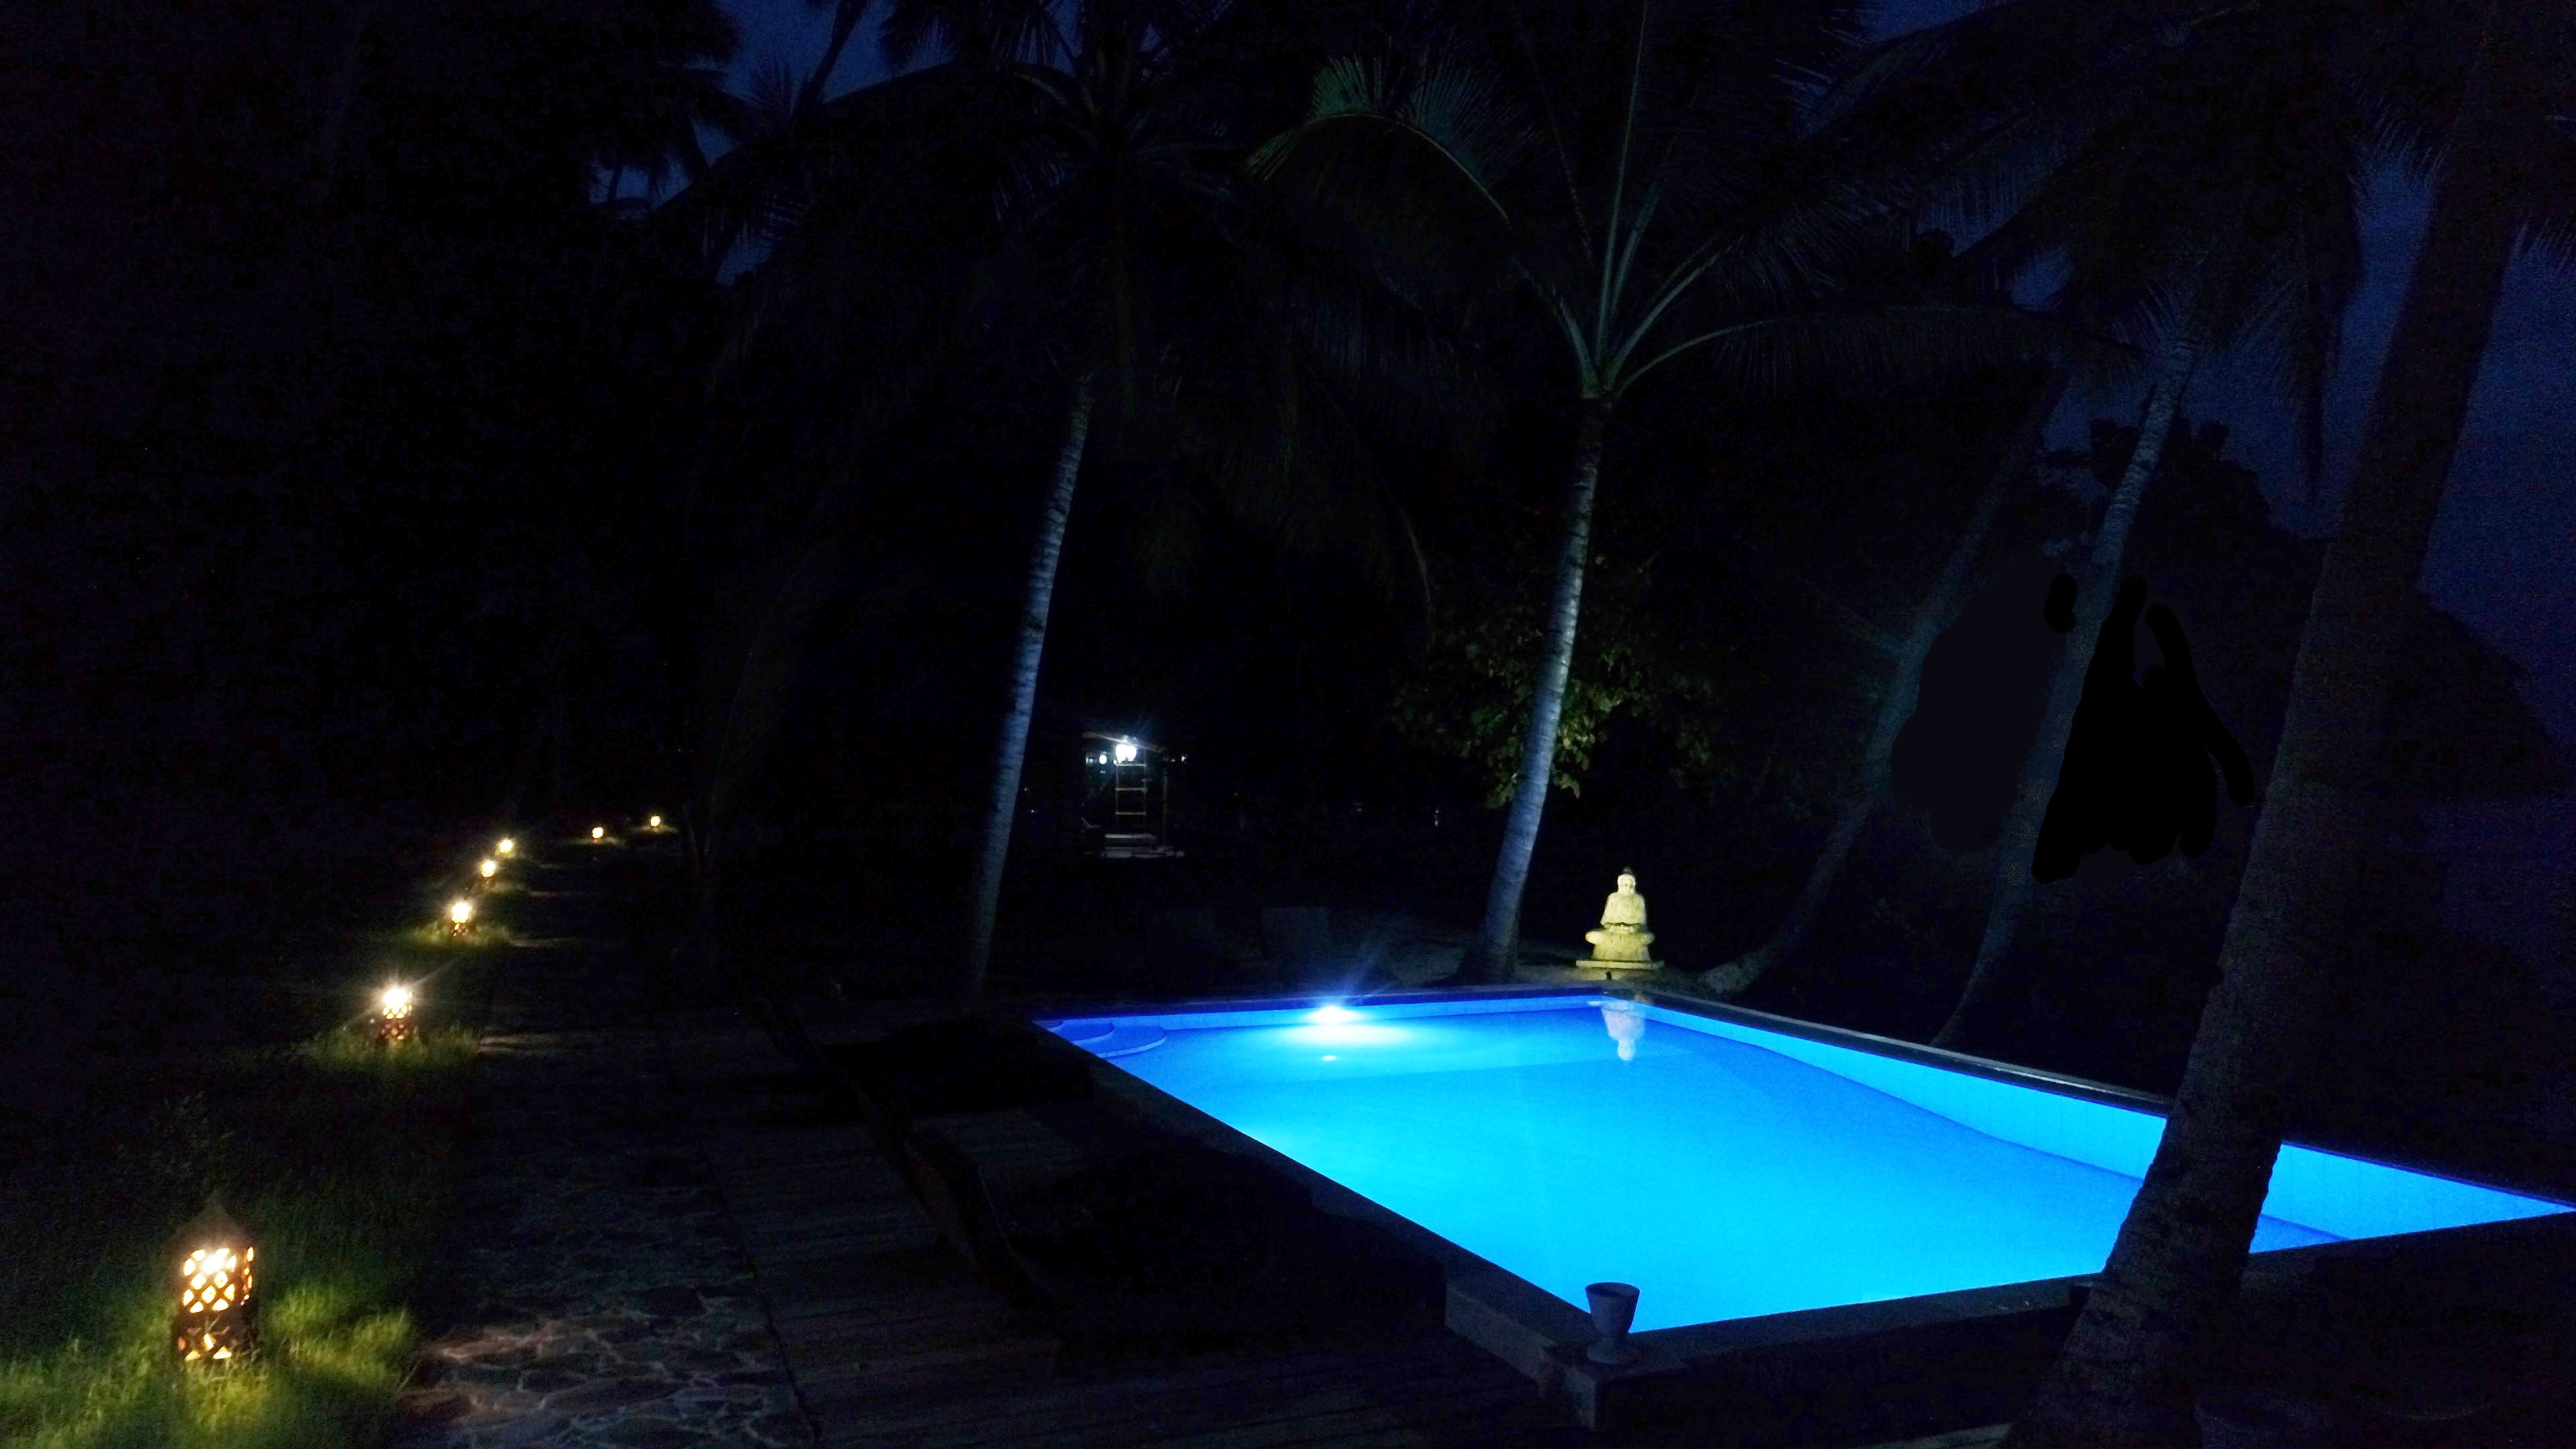 Pool Nigh View - Sali Bay Resort, South Halmahera, North Maluku